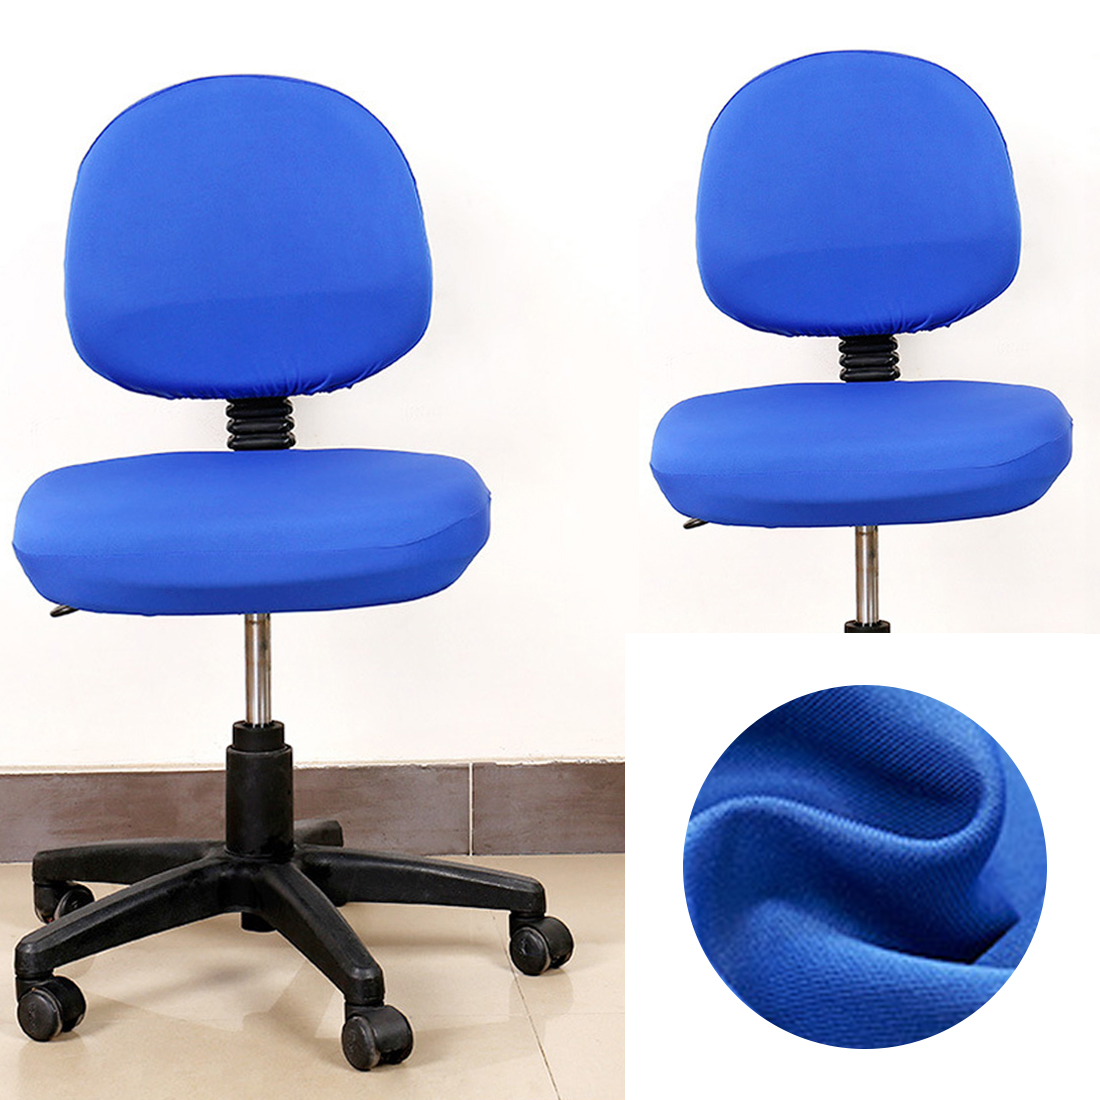 Elastic Chair Covers Made with Polyester Material For Office and Computer Chair in Universal Size 2